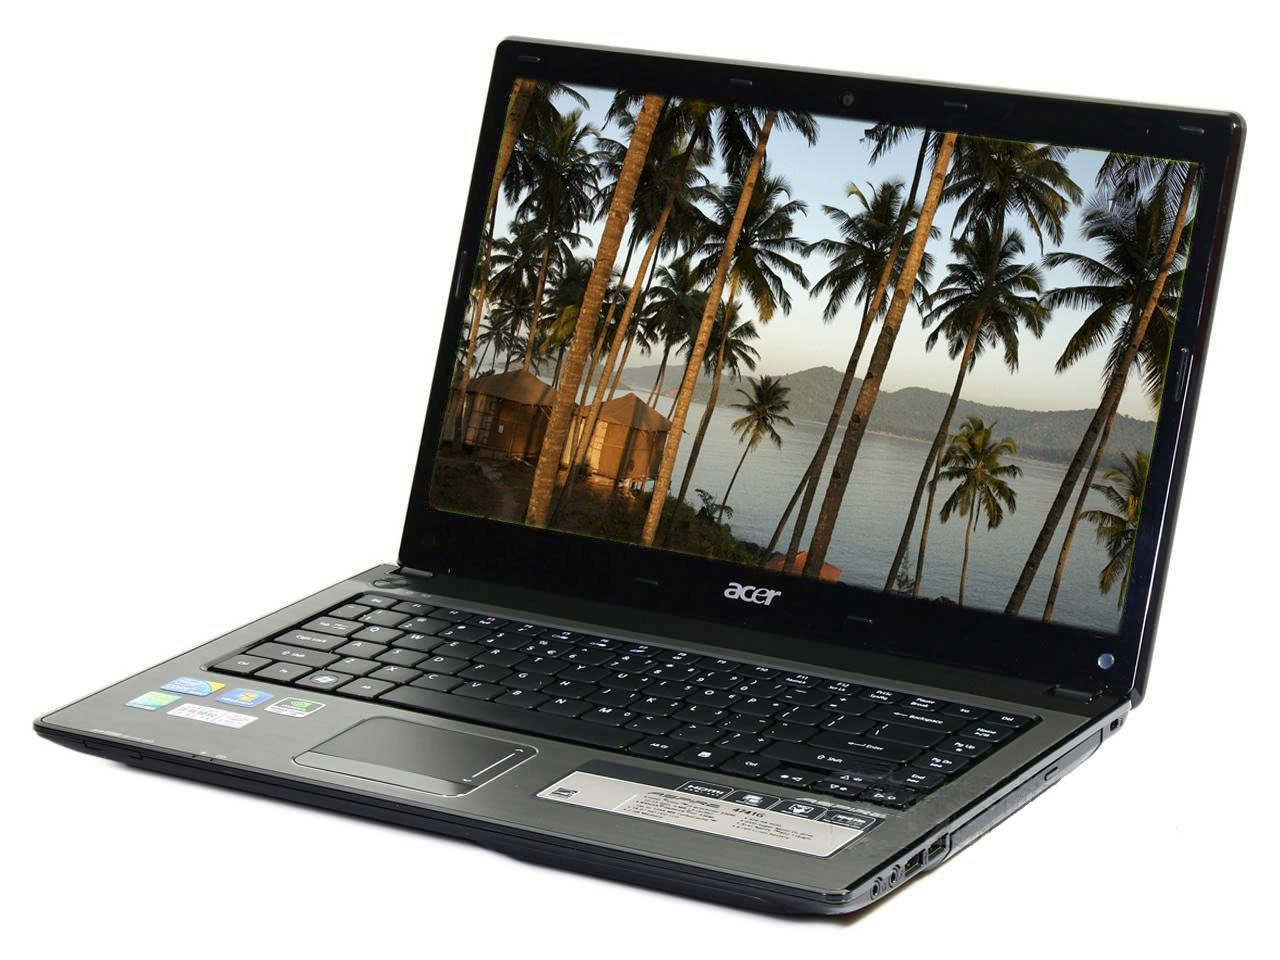 Acer Aspire 4750g Drivers Free Download